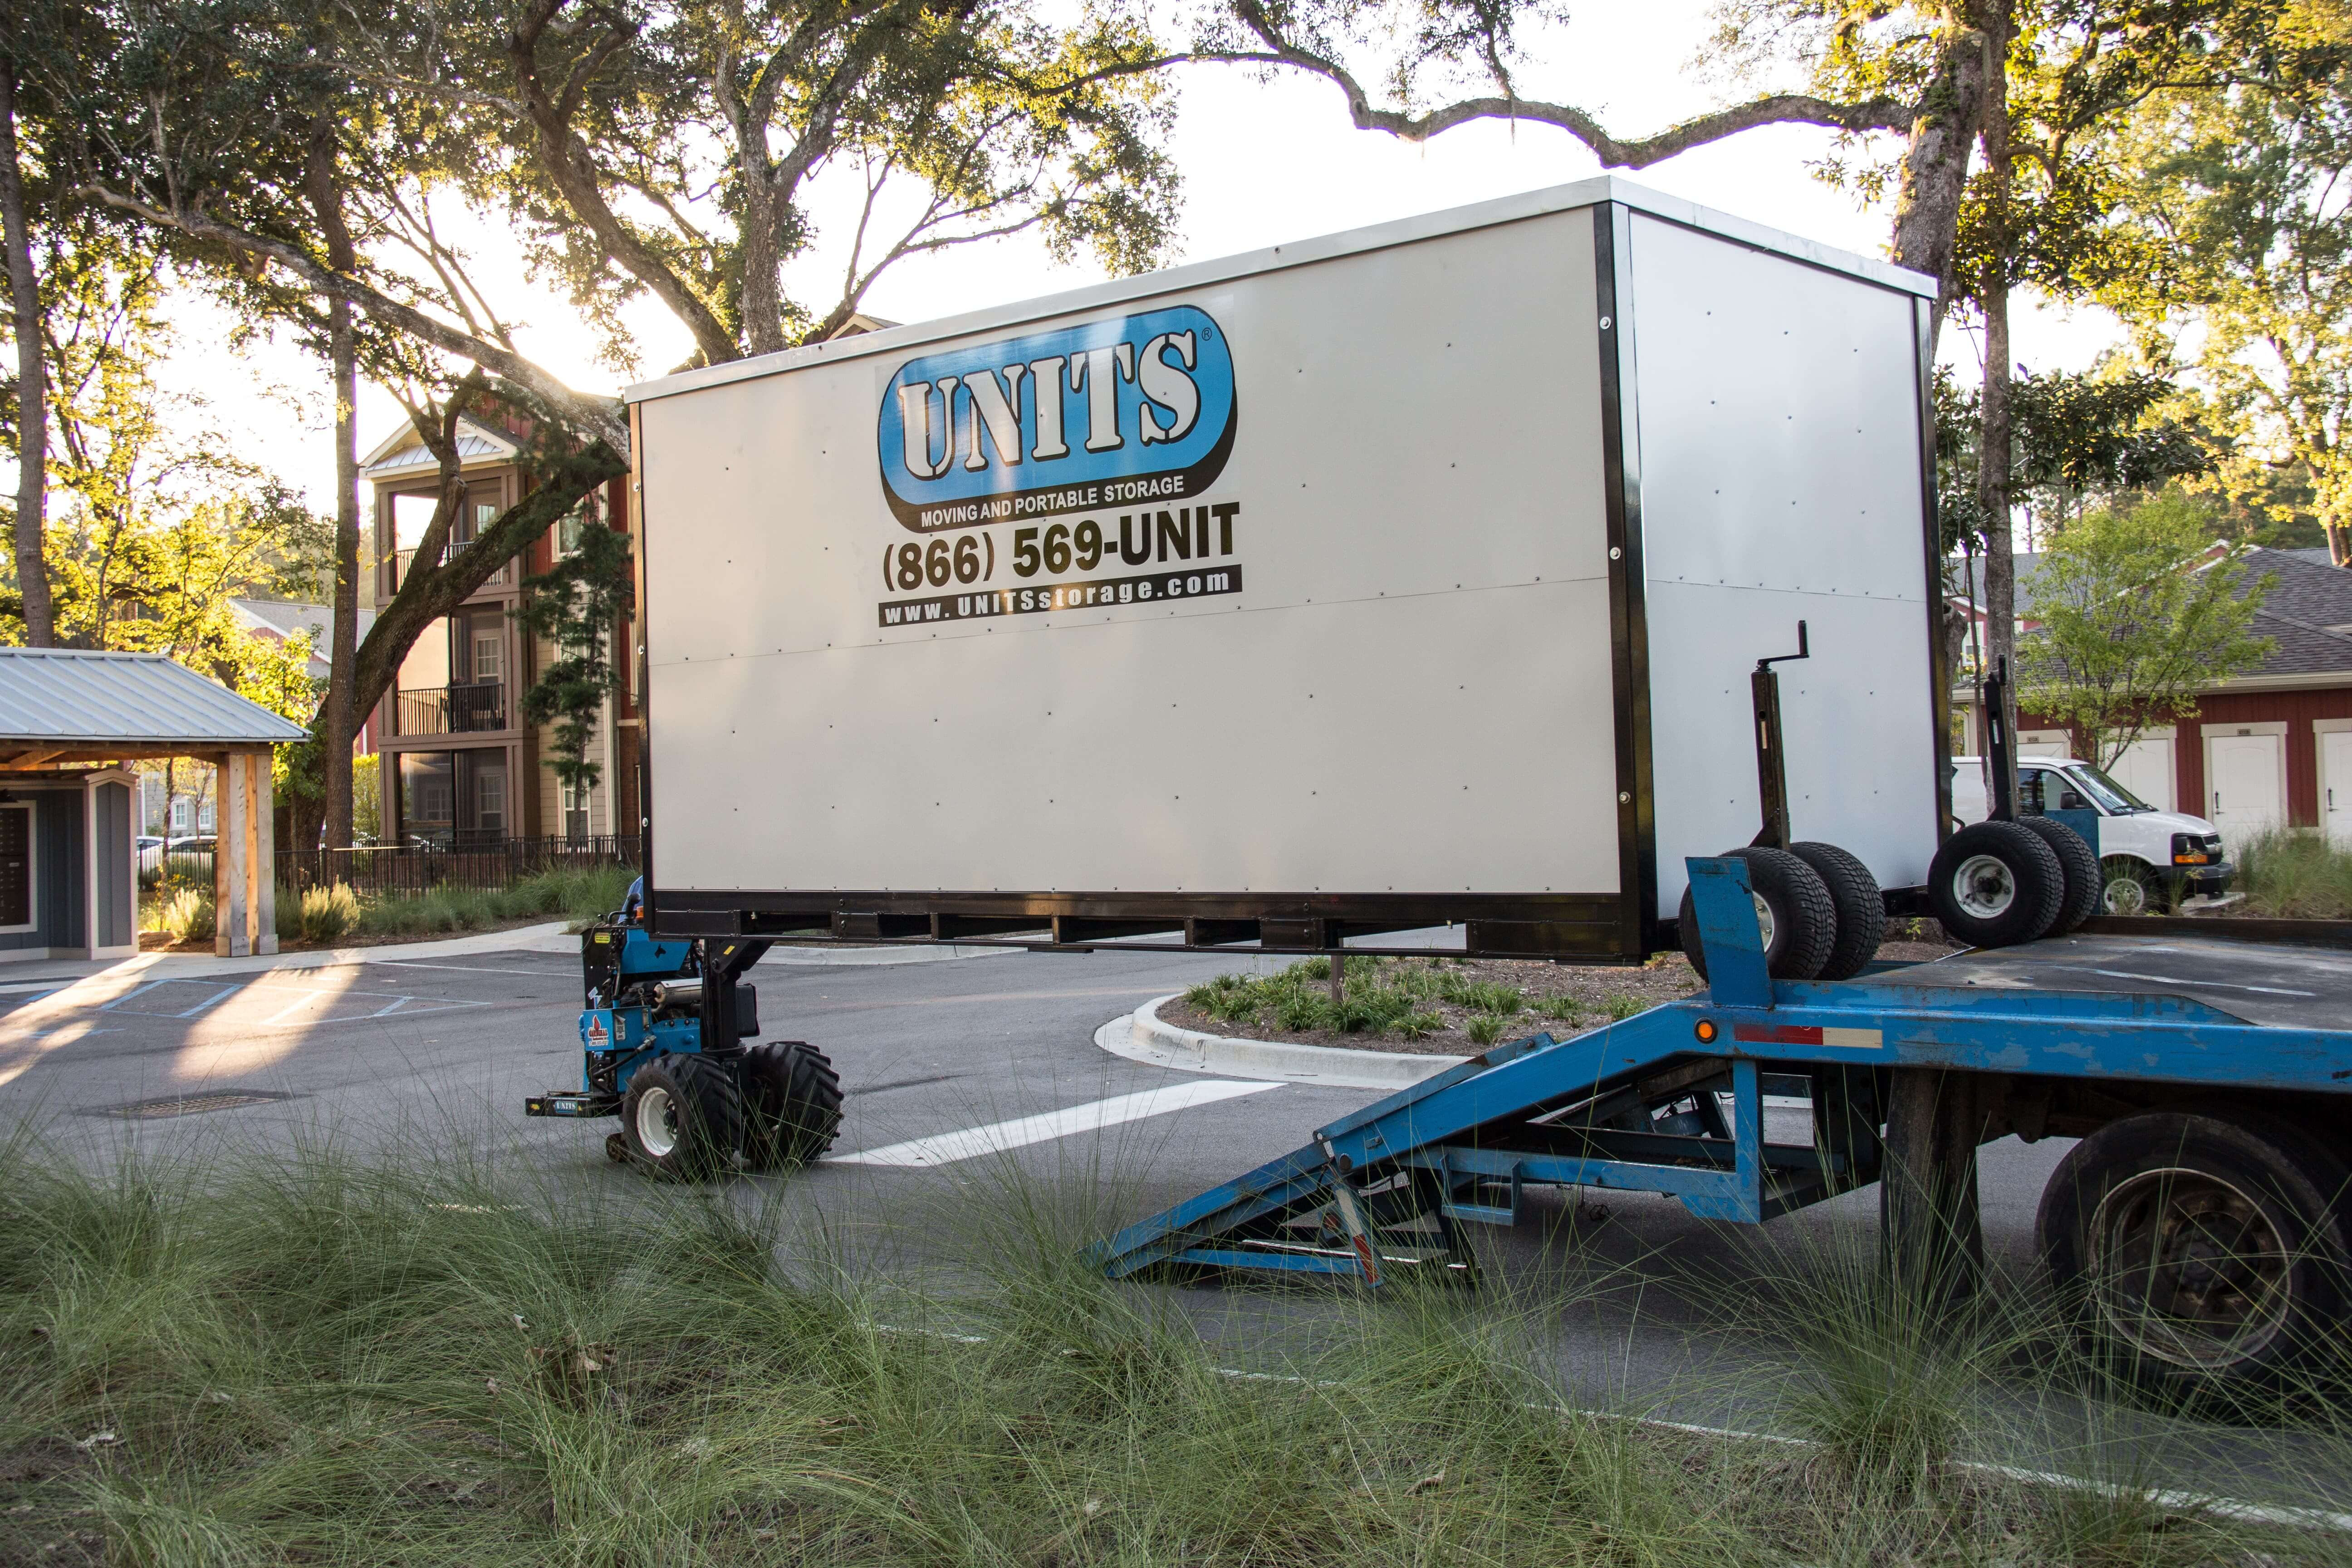 Our Gallery . & Portable Storage UNITS® u0026 Containers Charleston SC - UNITS Storage ...